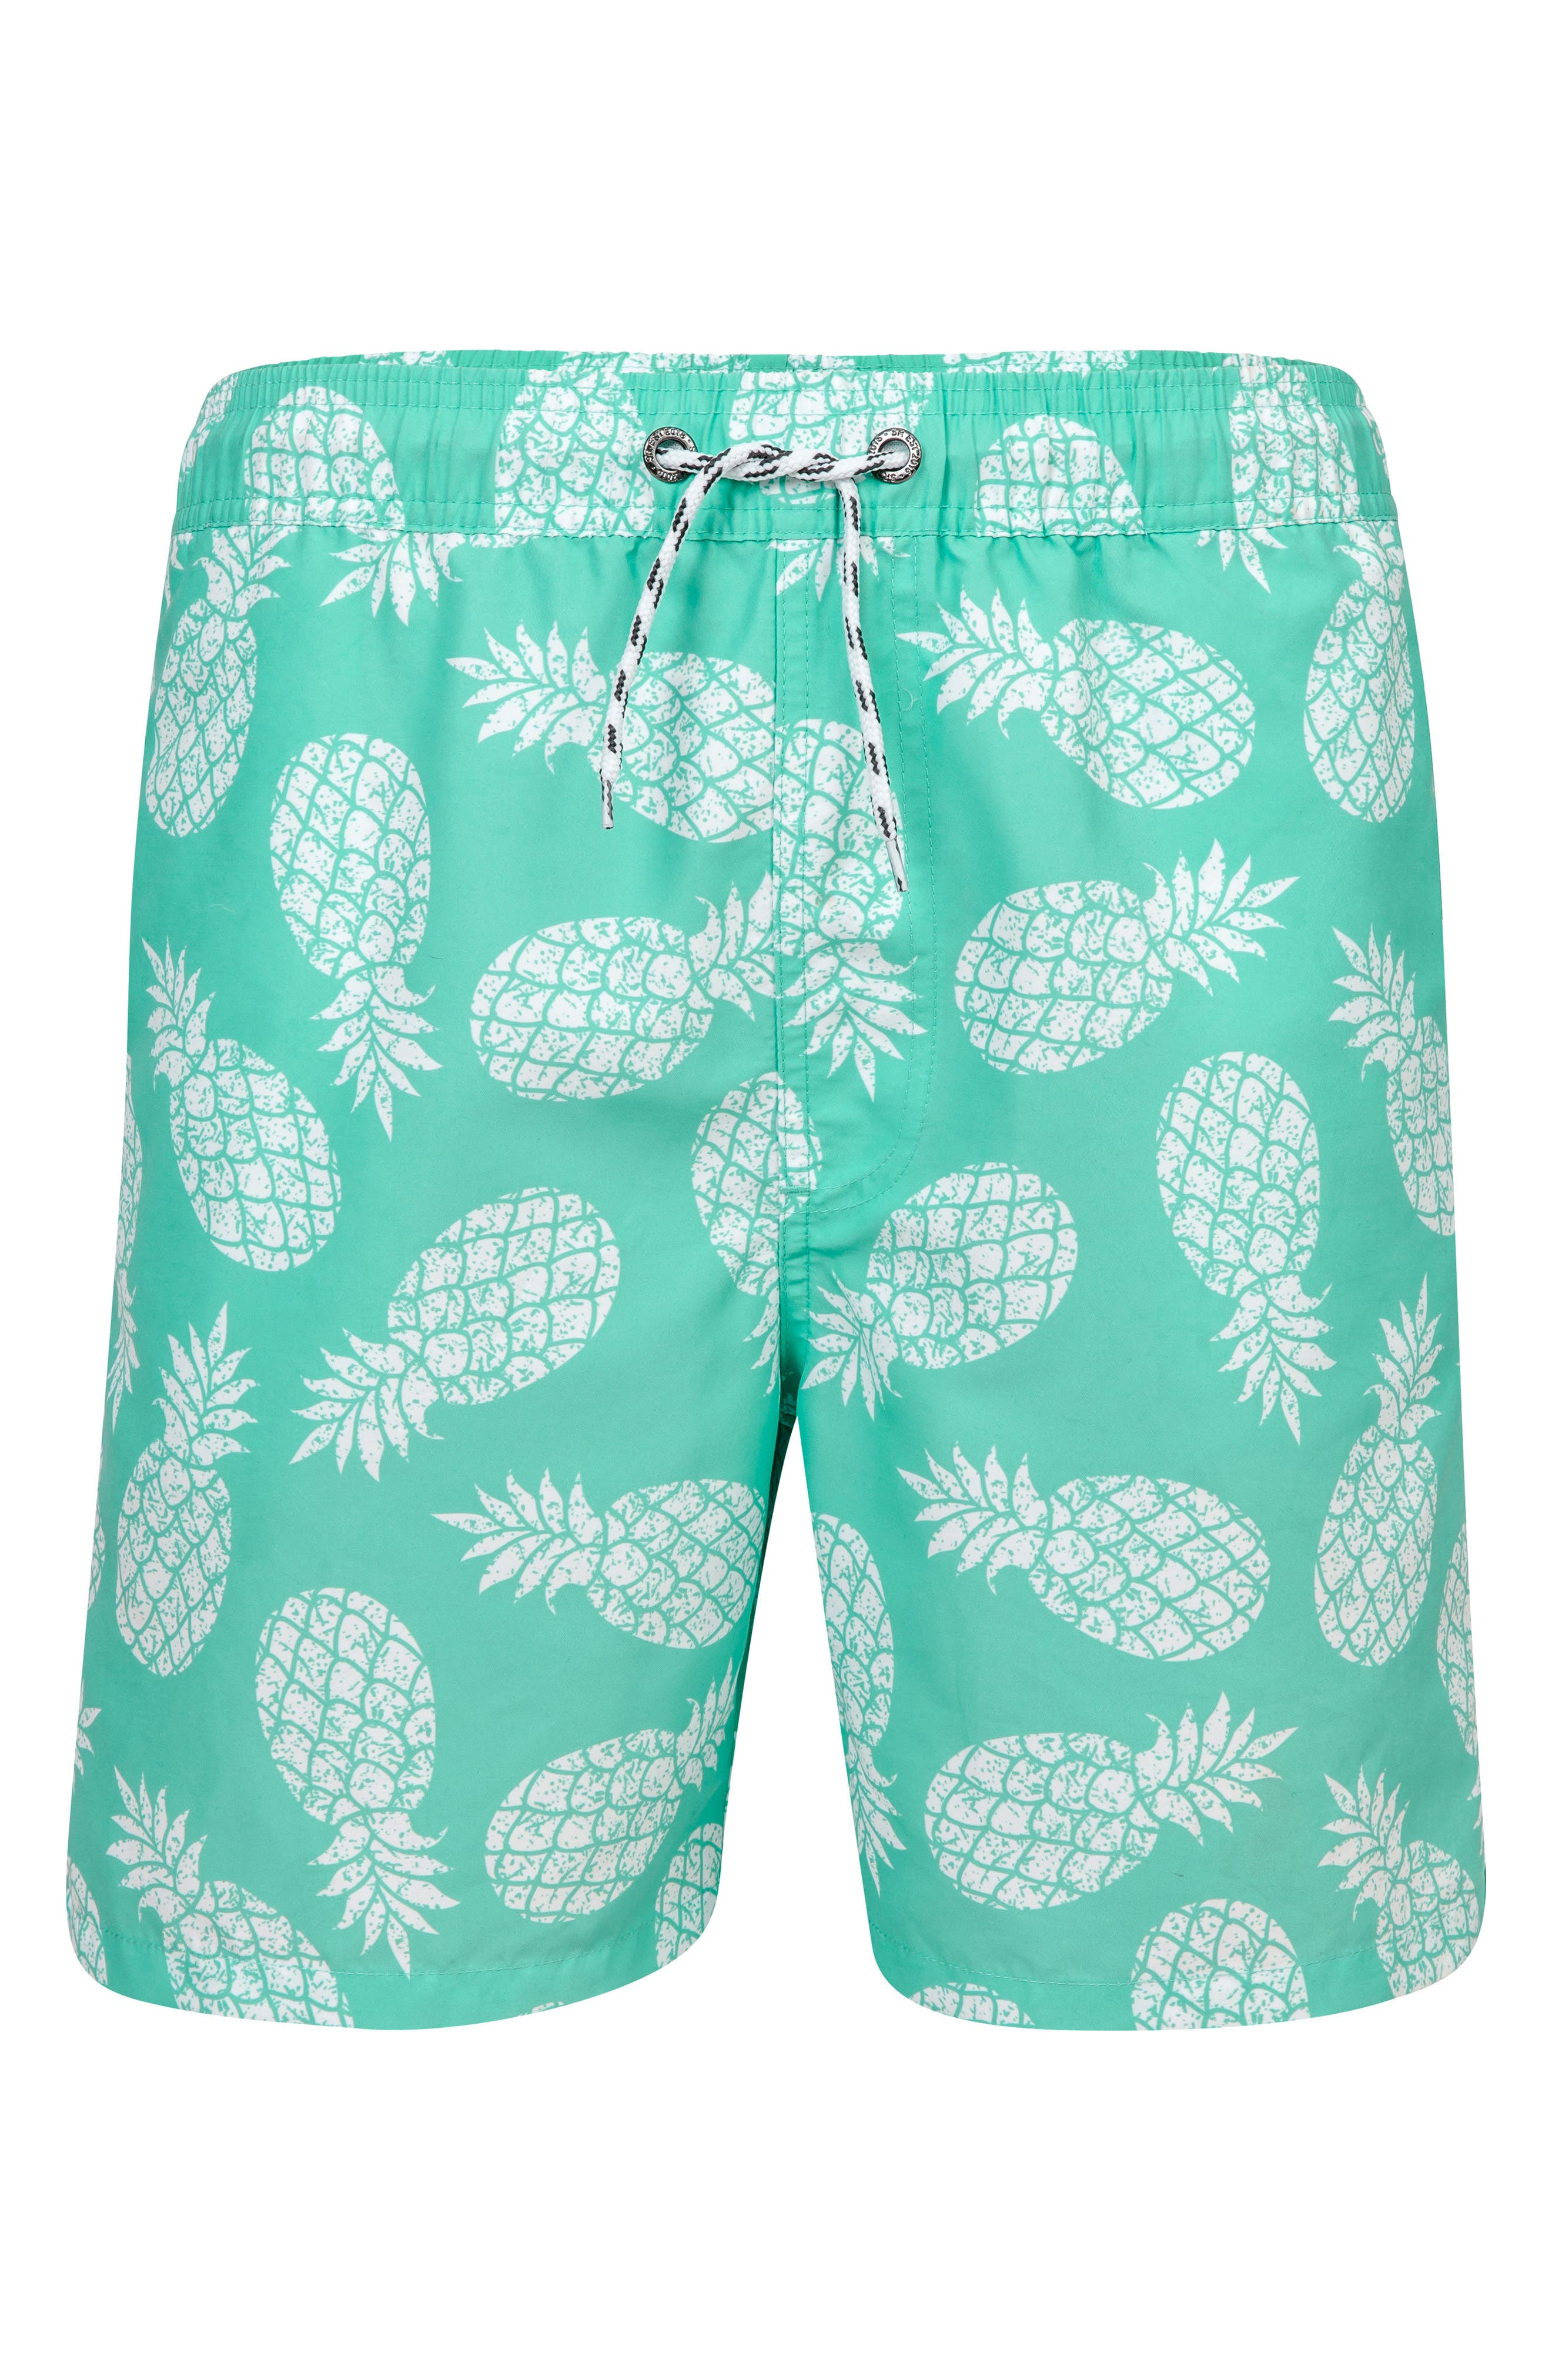 Pineapples Board Shorts,                         Main,                         color, 330